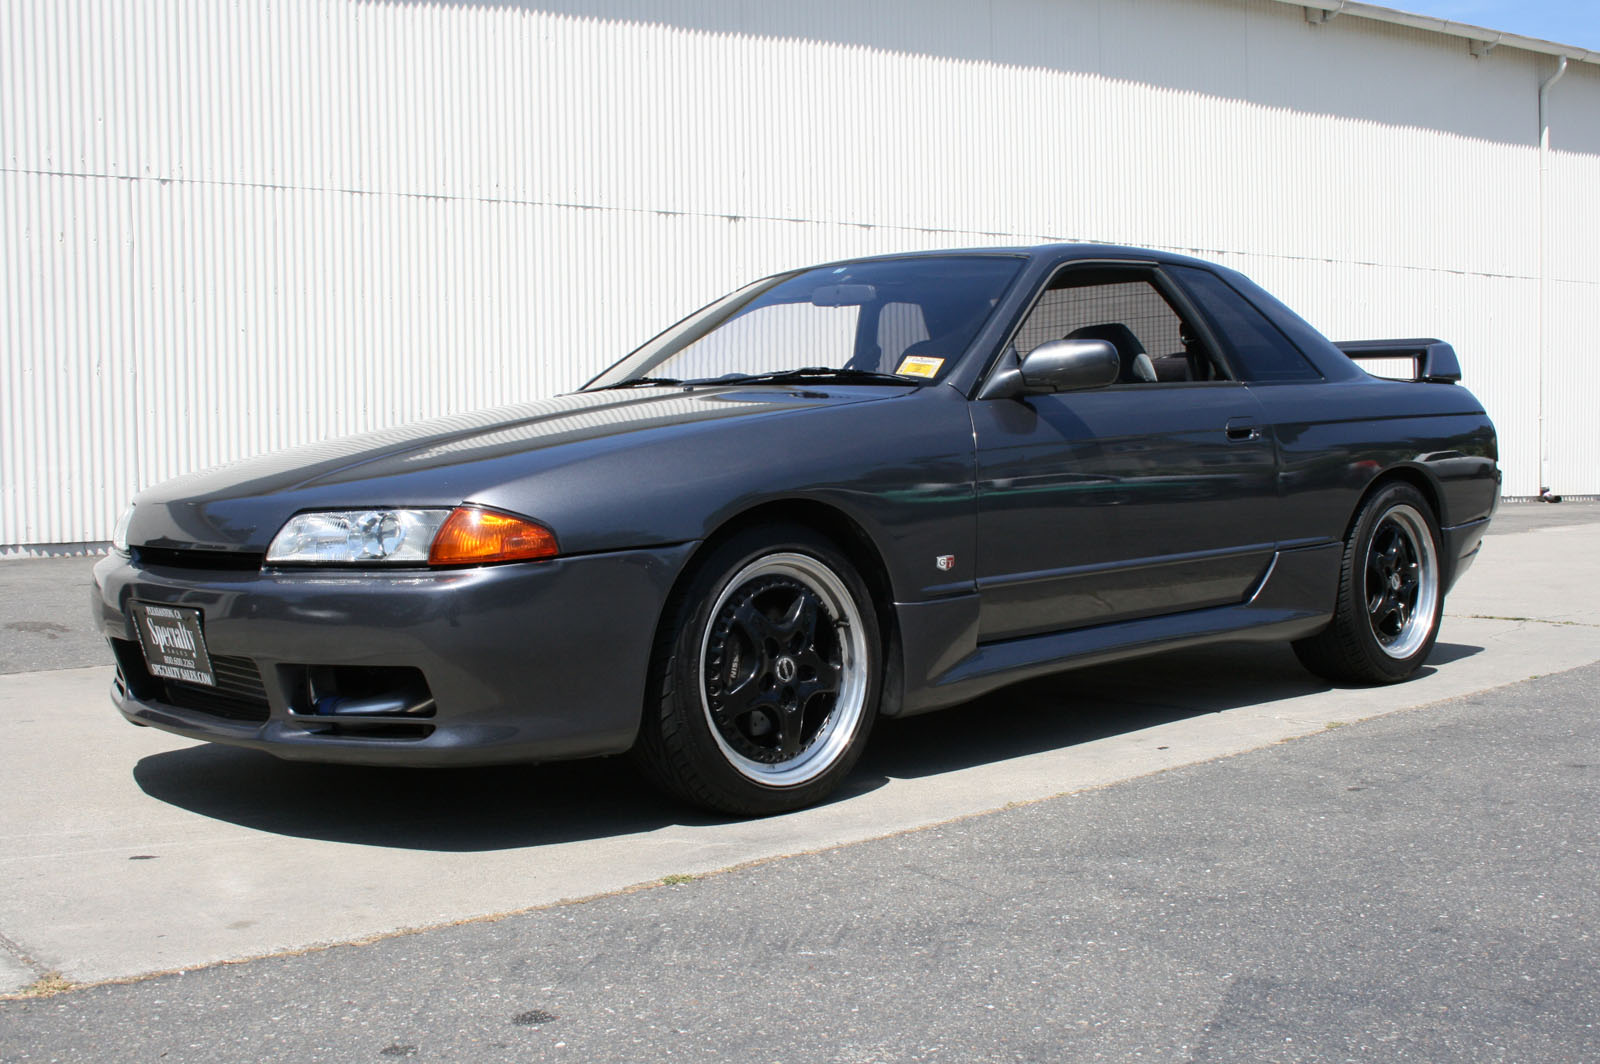 1991 nissan skyline r32 gts t type m for sale pleasanton california. Black Bedroom Furniture Sets. Home Design Ideas